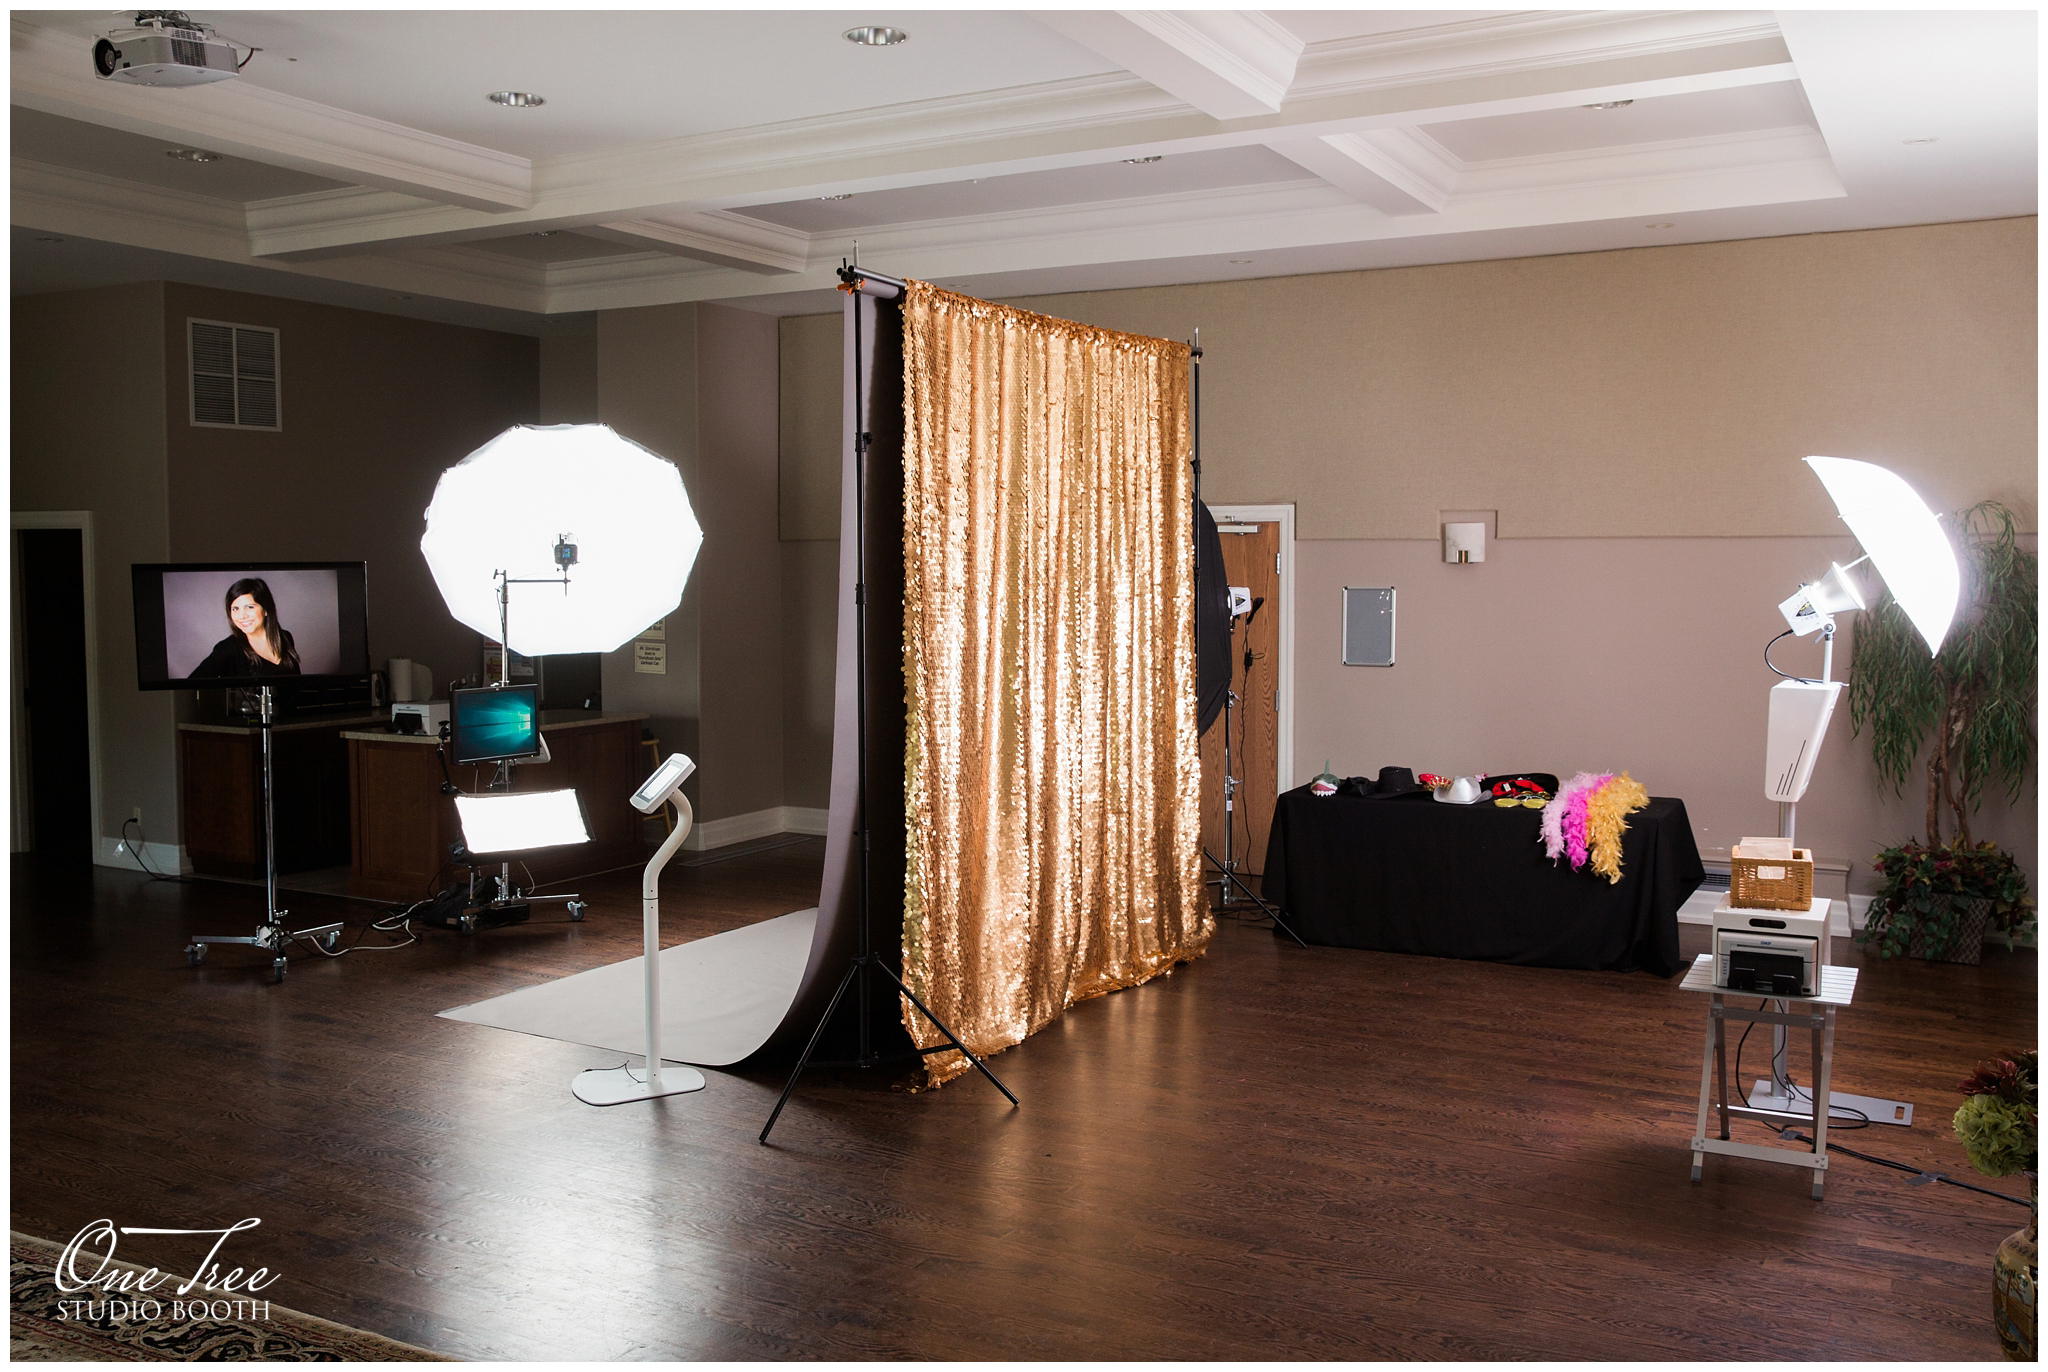 Corporate Headshots and Luxury Photo Booth | One Tree Studio Booth | Toronto and Niagara Region